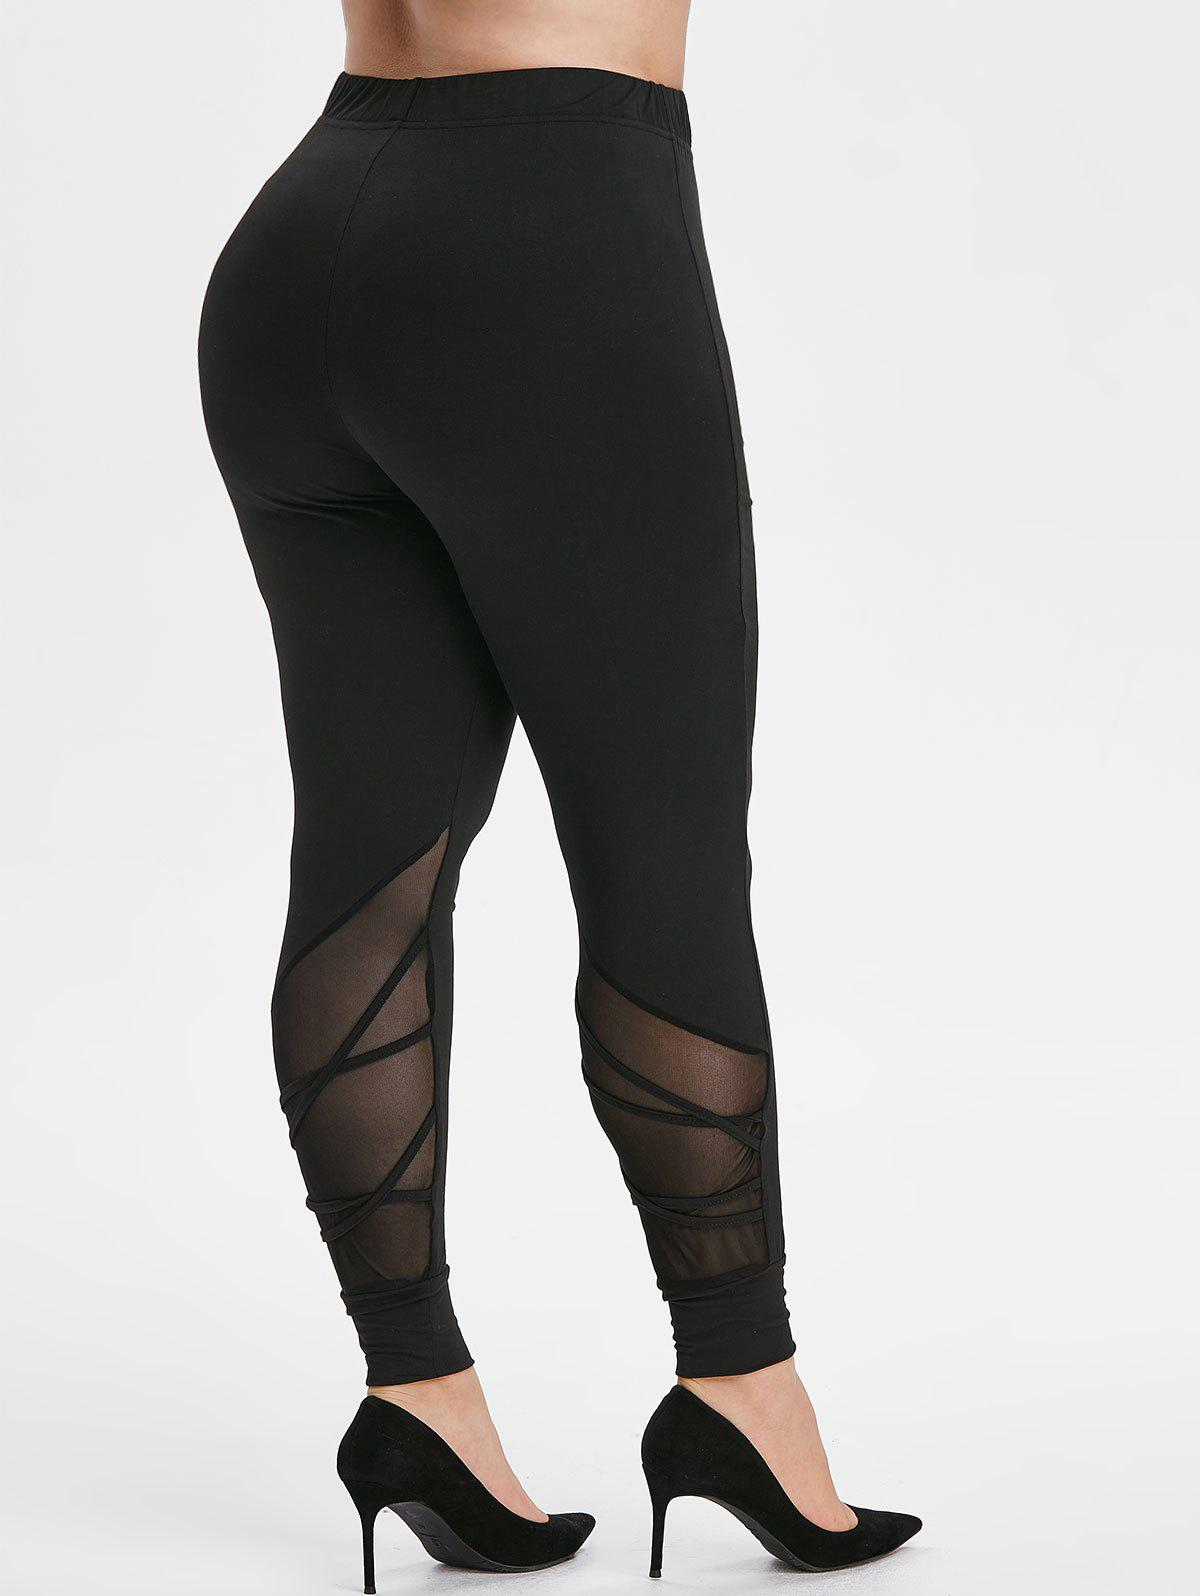 Plus Size Mesh Insert Criss-cross High Waisted Skinny Leggings - BLACK 1X